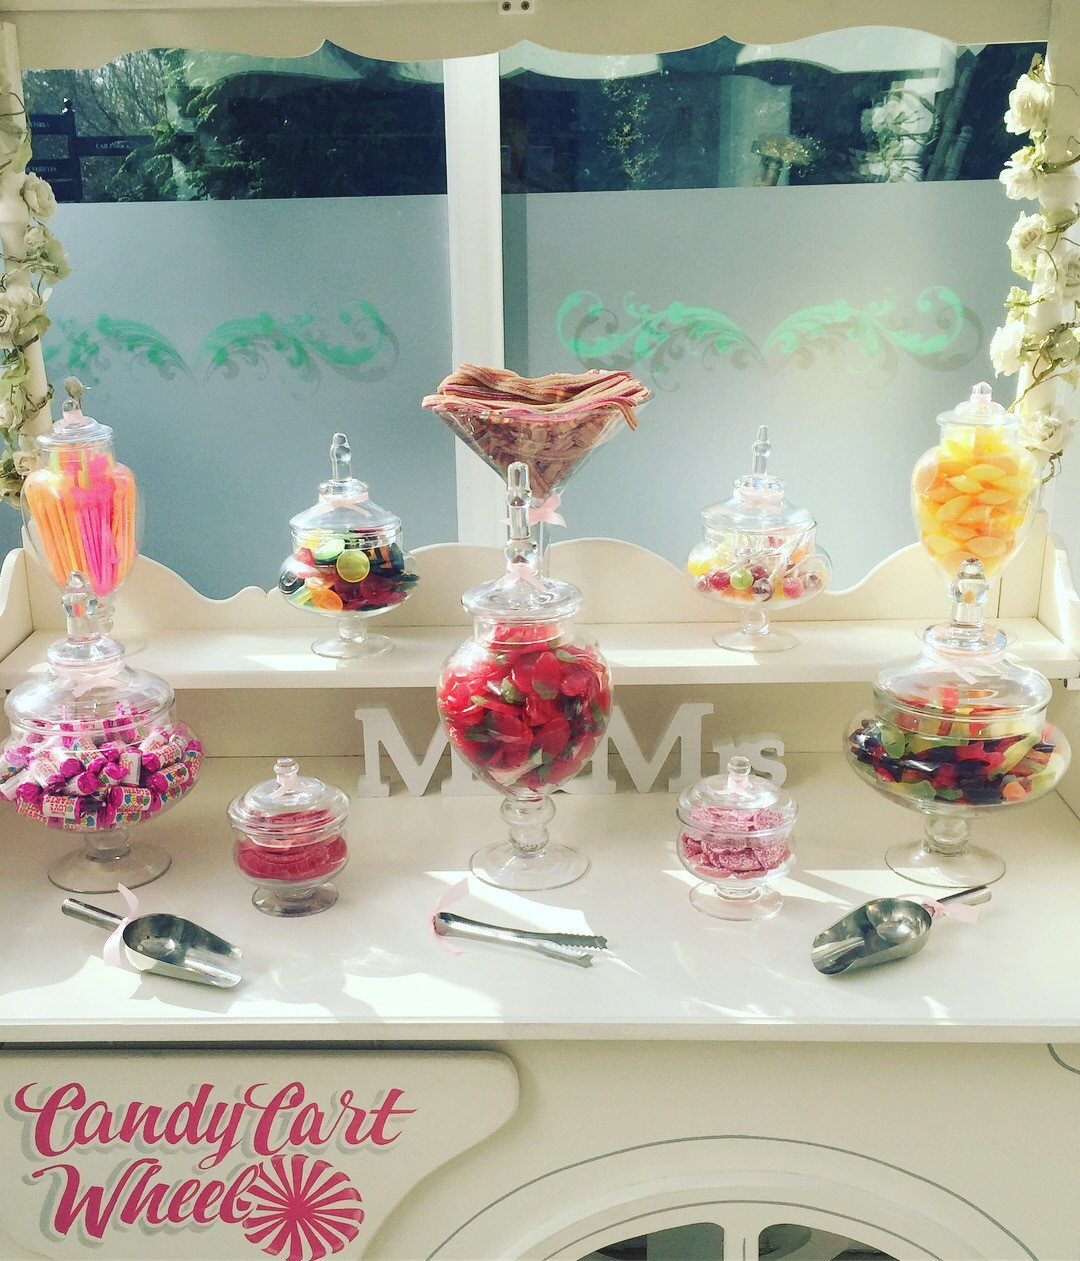 Candy Feast Wedding Cart Vegeterian Sweets - Ariana Gardens Chelmsford